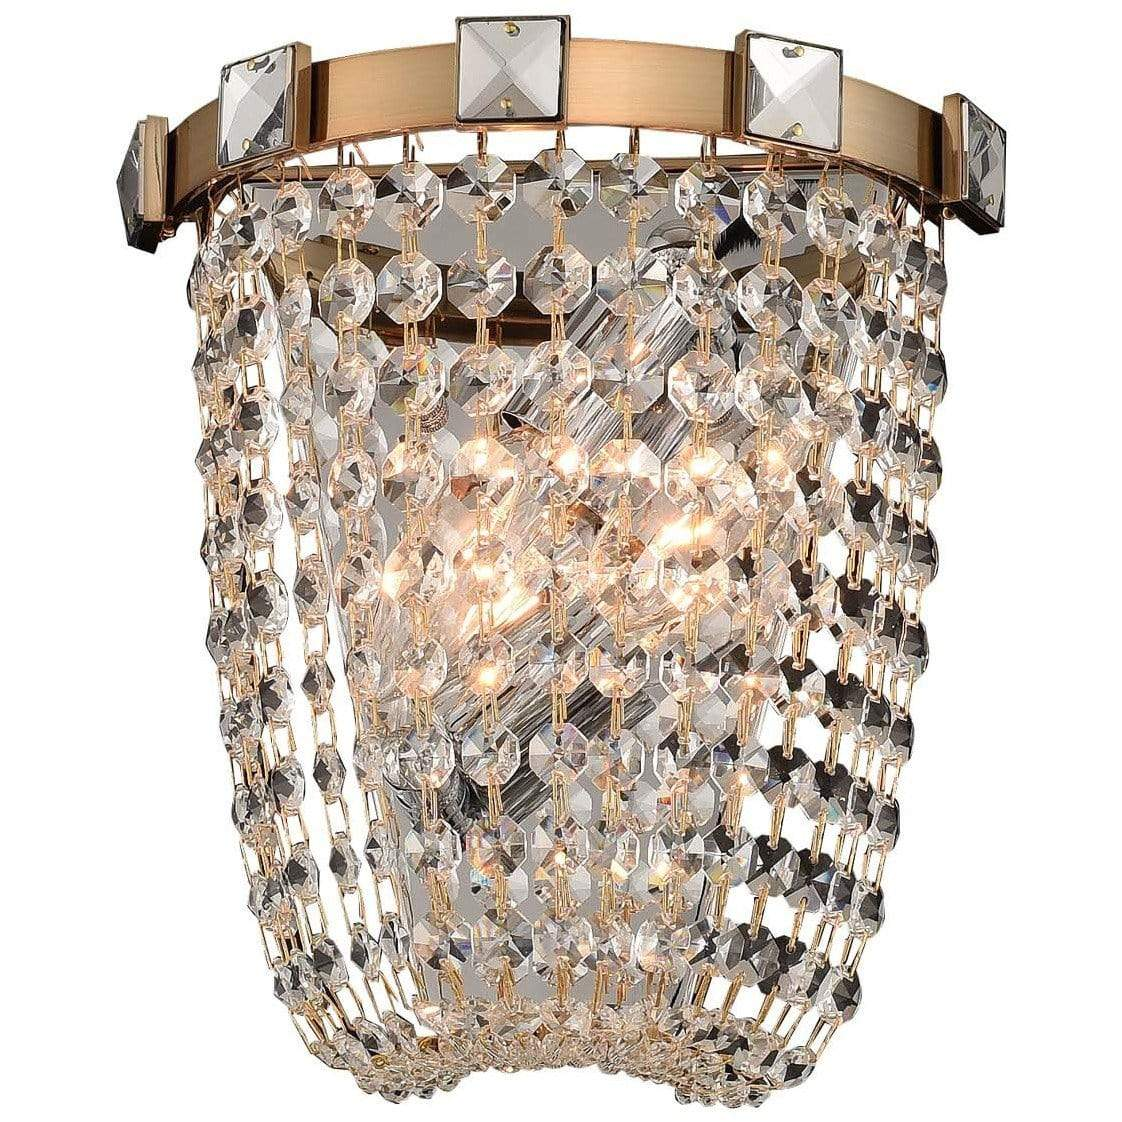 Allegri by Kalco Lighting Wall Sconces Brushed Champagne Gold / Firenze Clear Impero 2 Light Wall Sconce From Allegri by Kalco Lighting 027920